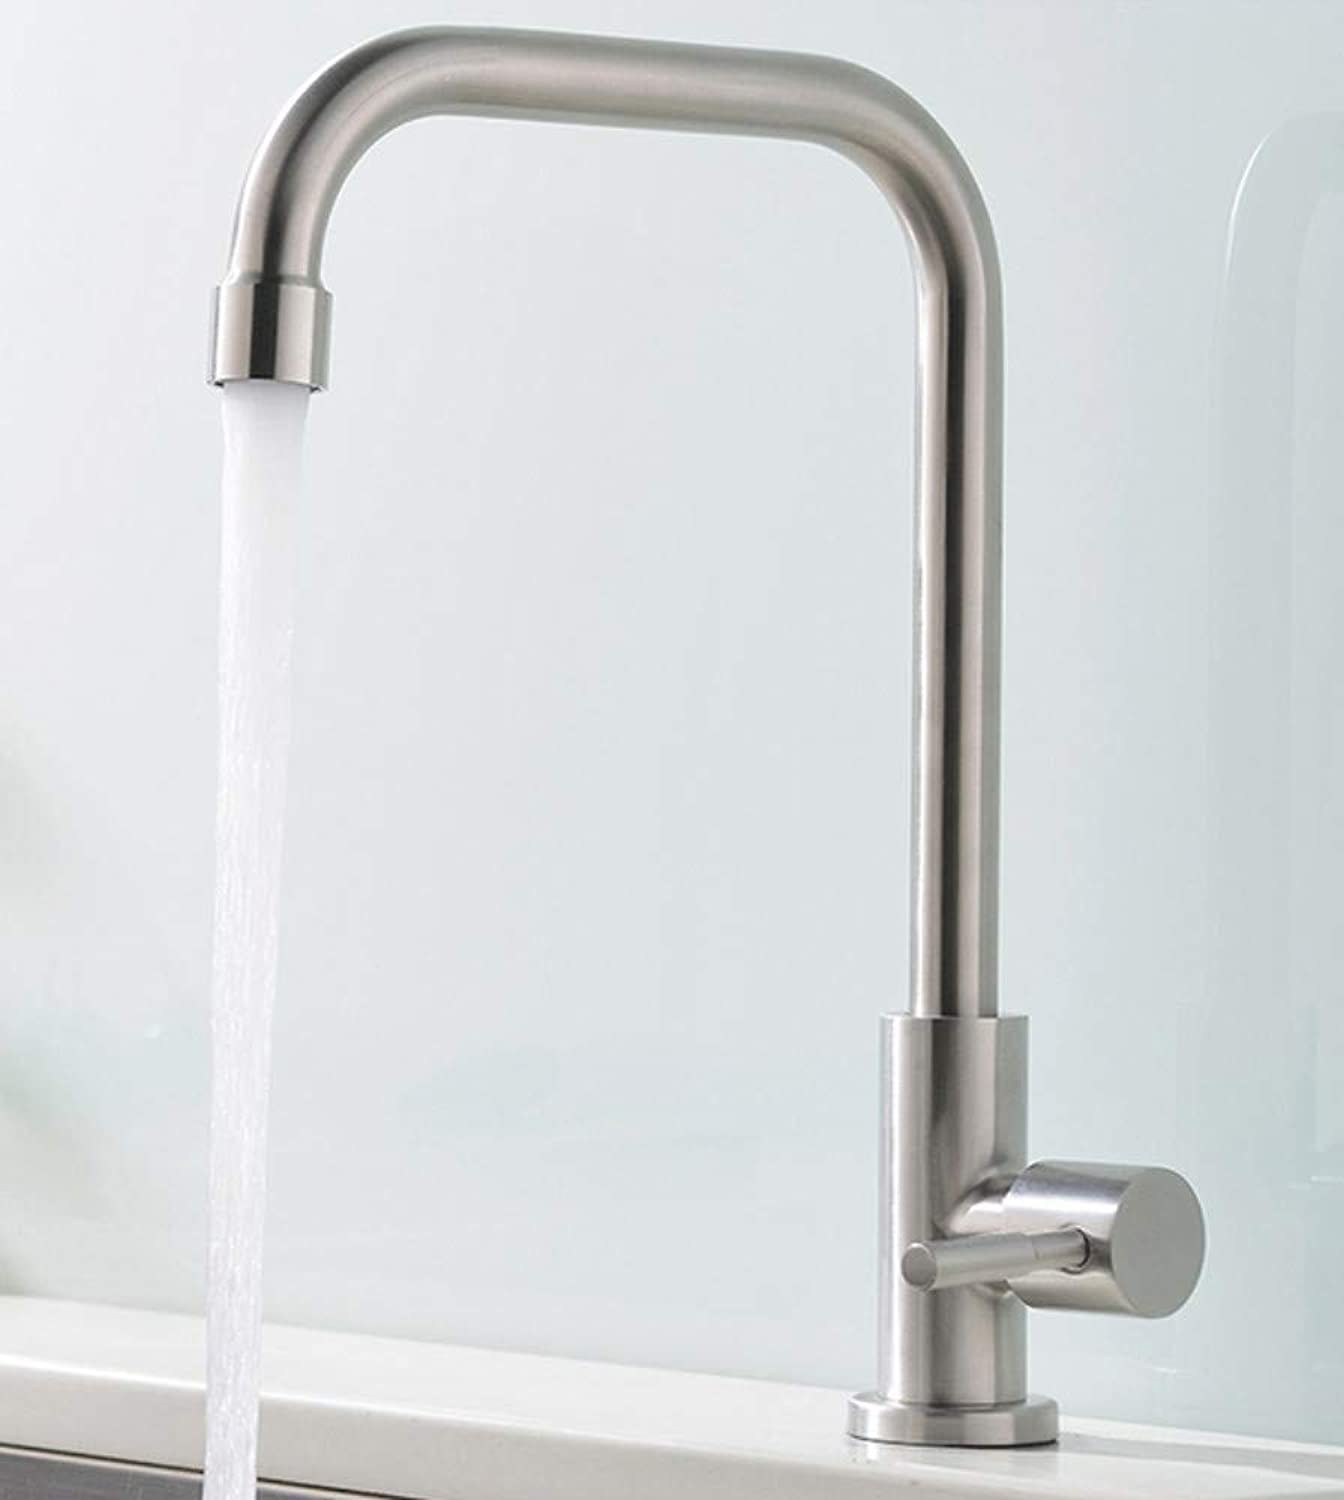 Stainless Steel Kitchen Faucet Sink Sink Single Cold Faucet